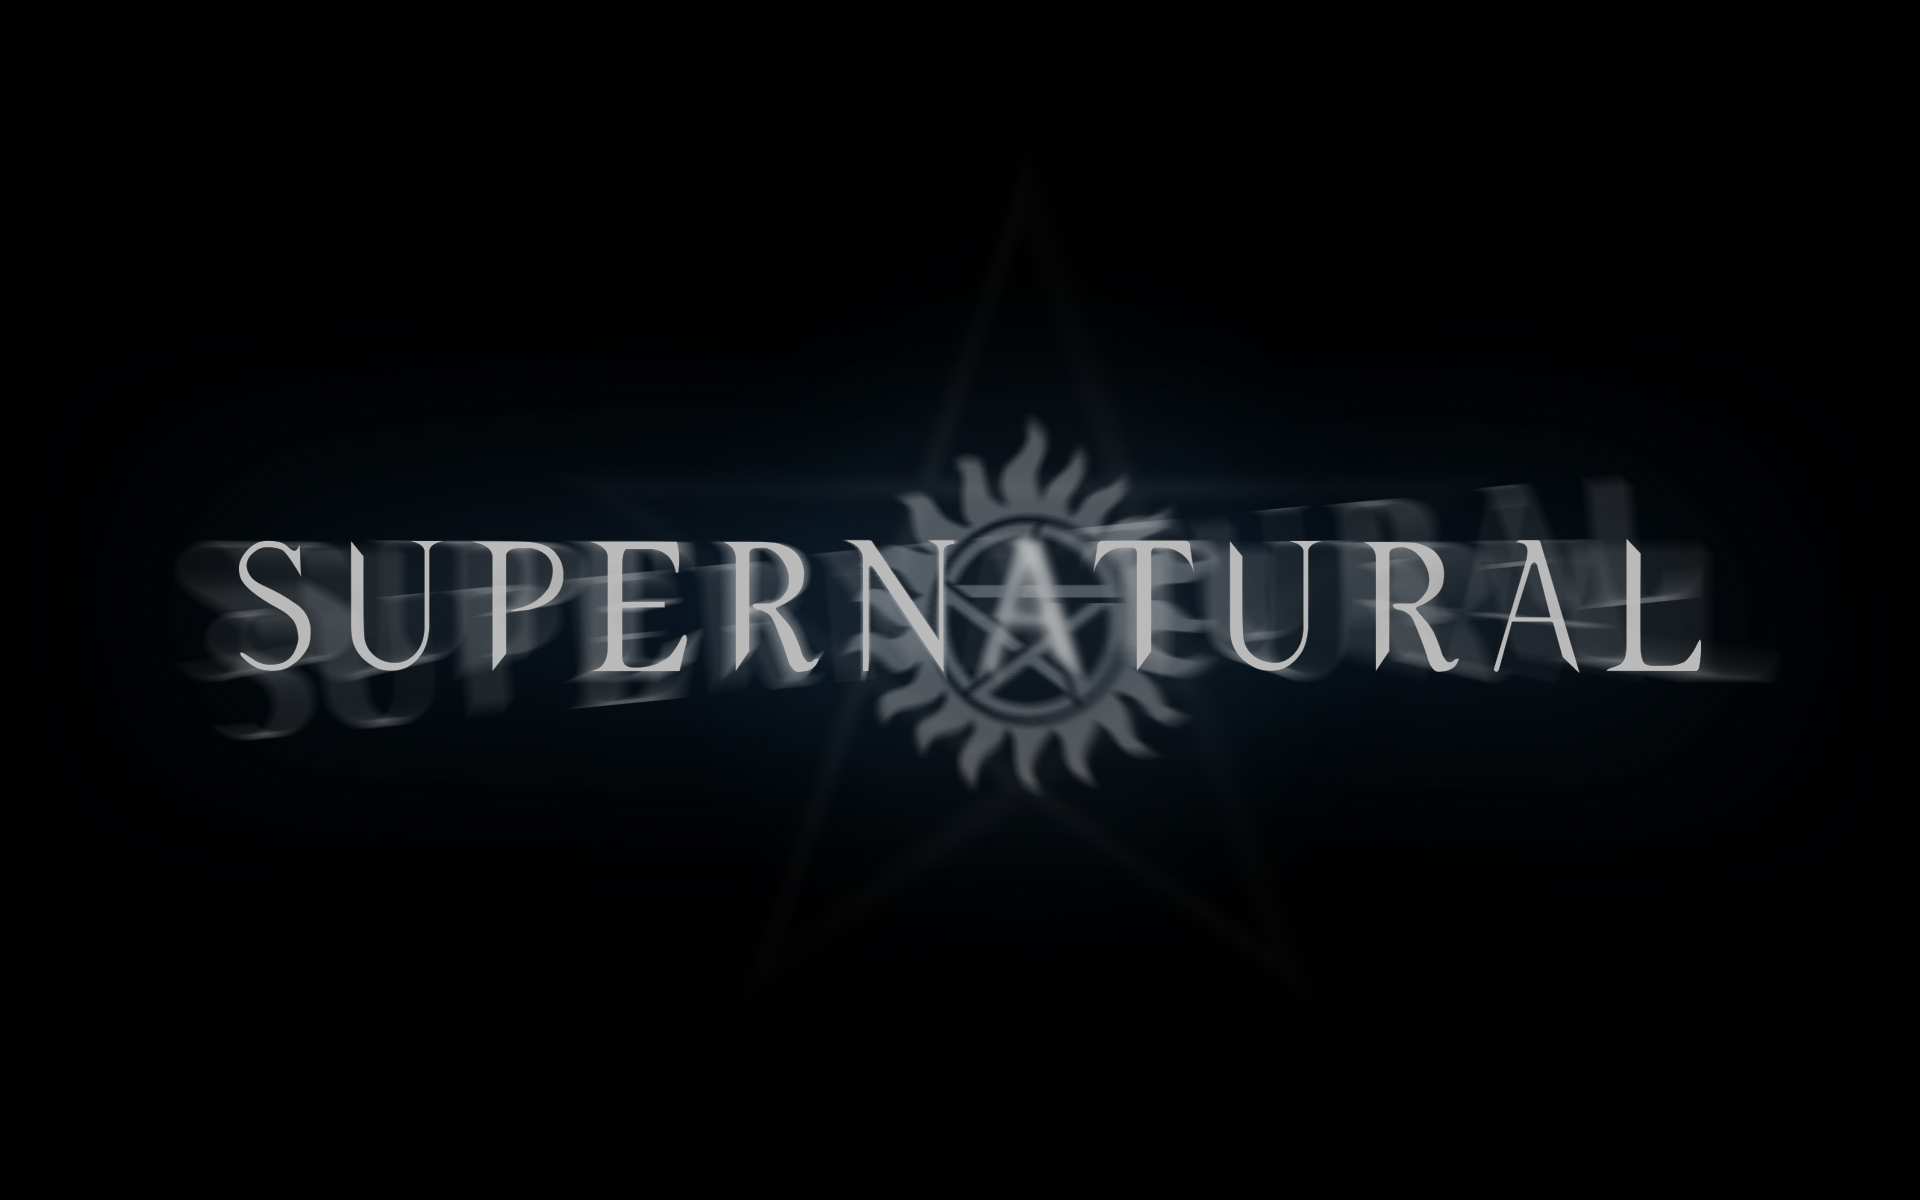 Supernatural wallpaper by pvlimota d5nhp03